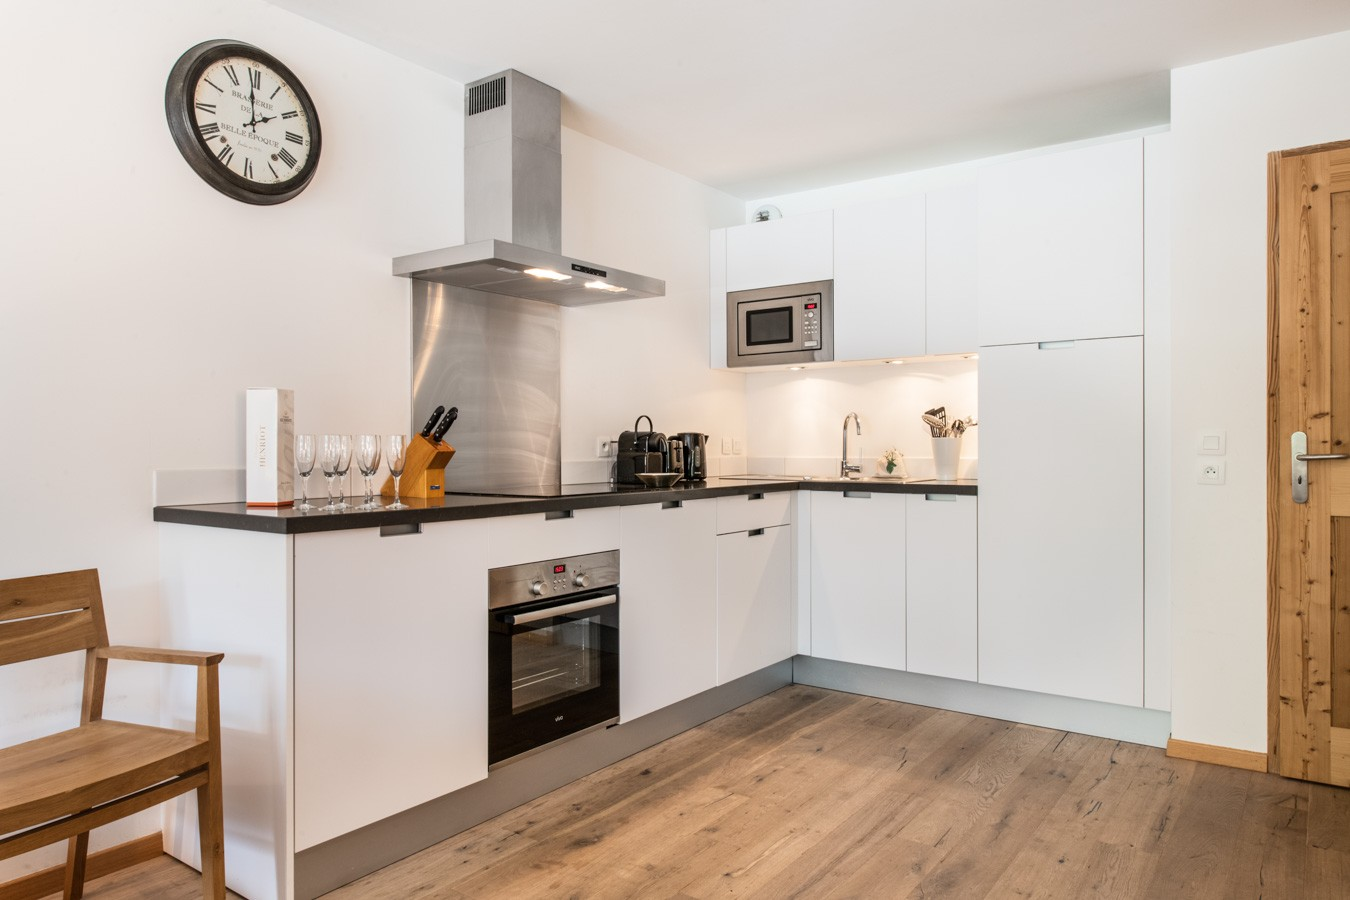 Les Gets Luxury Rental Appartment Anrelle Kitchen